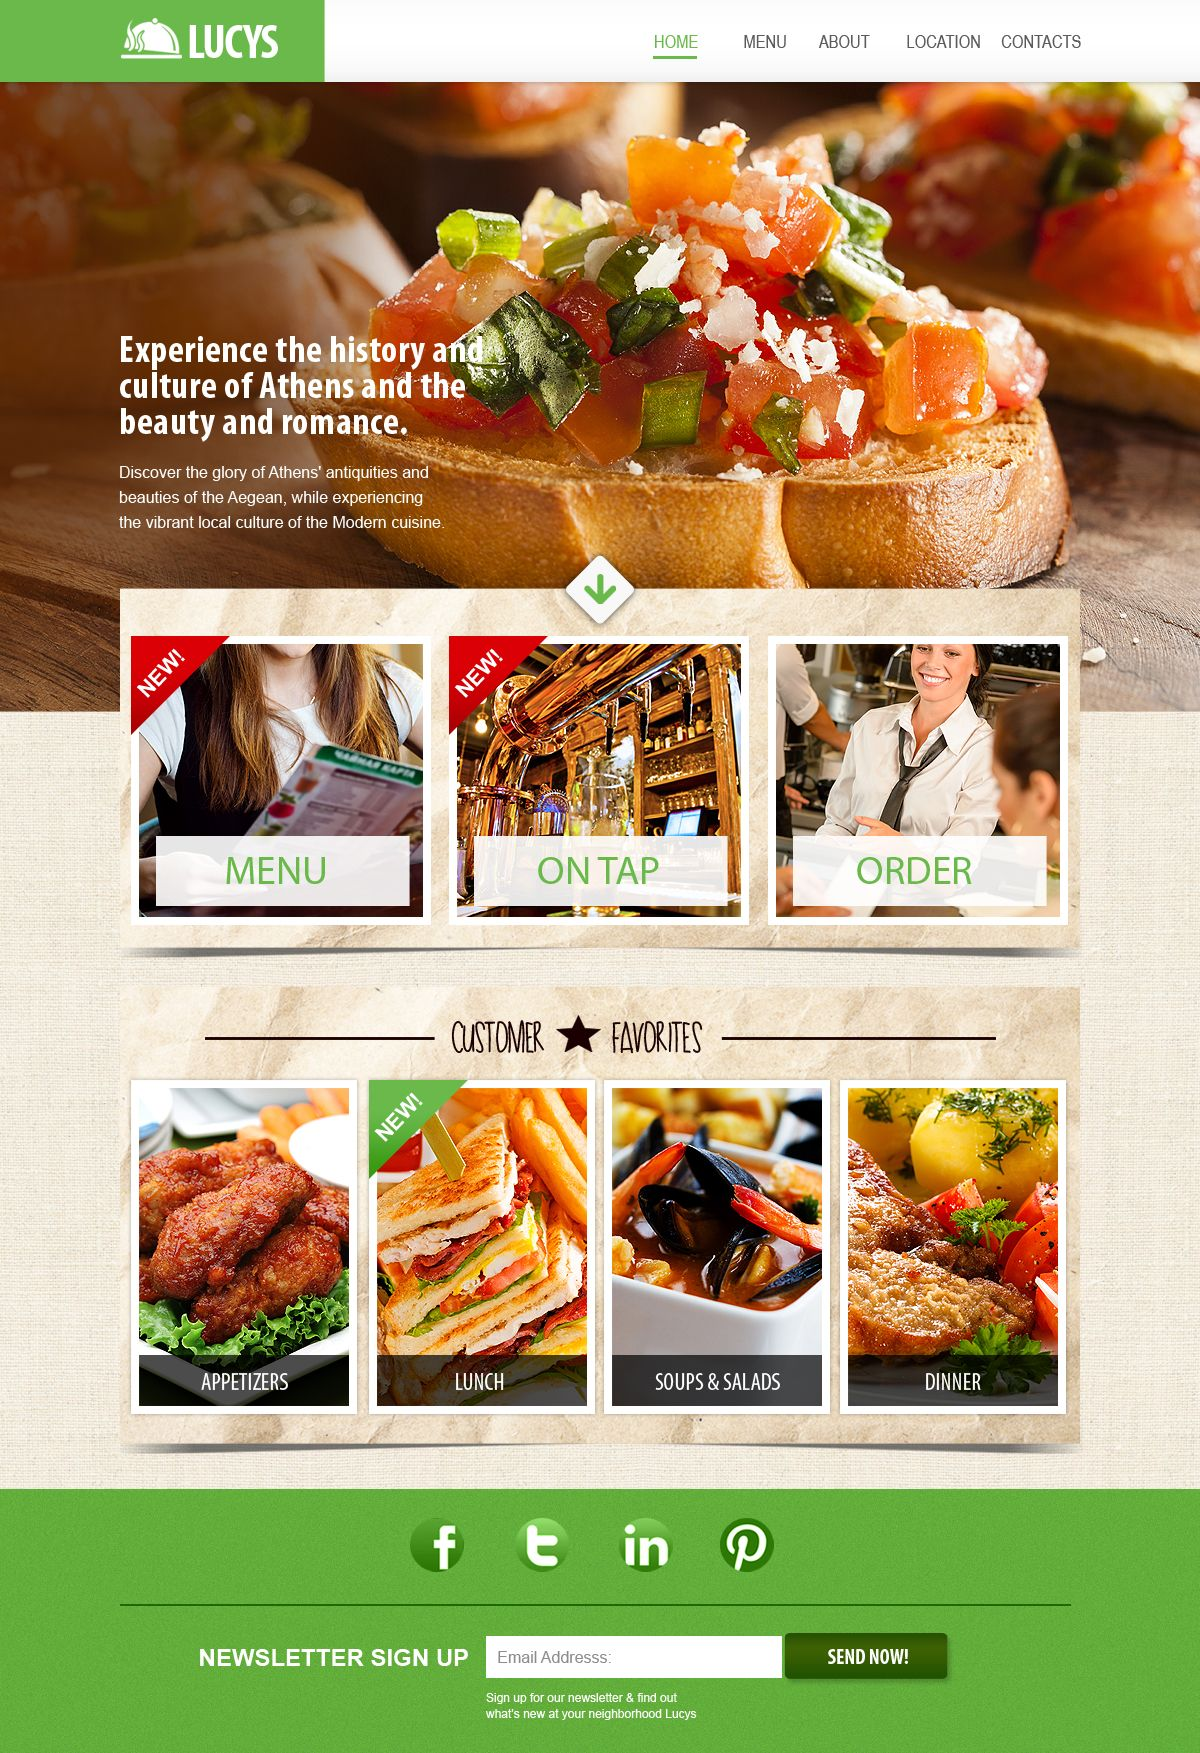 Restaurant Website Design Inspiration Business Website Design Restaurant Website Design Inspiration Restaurant Website Design Restaurant Website